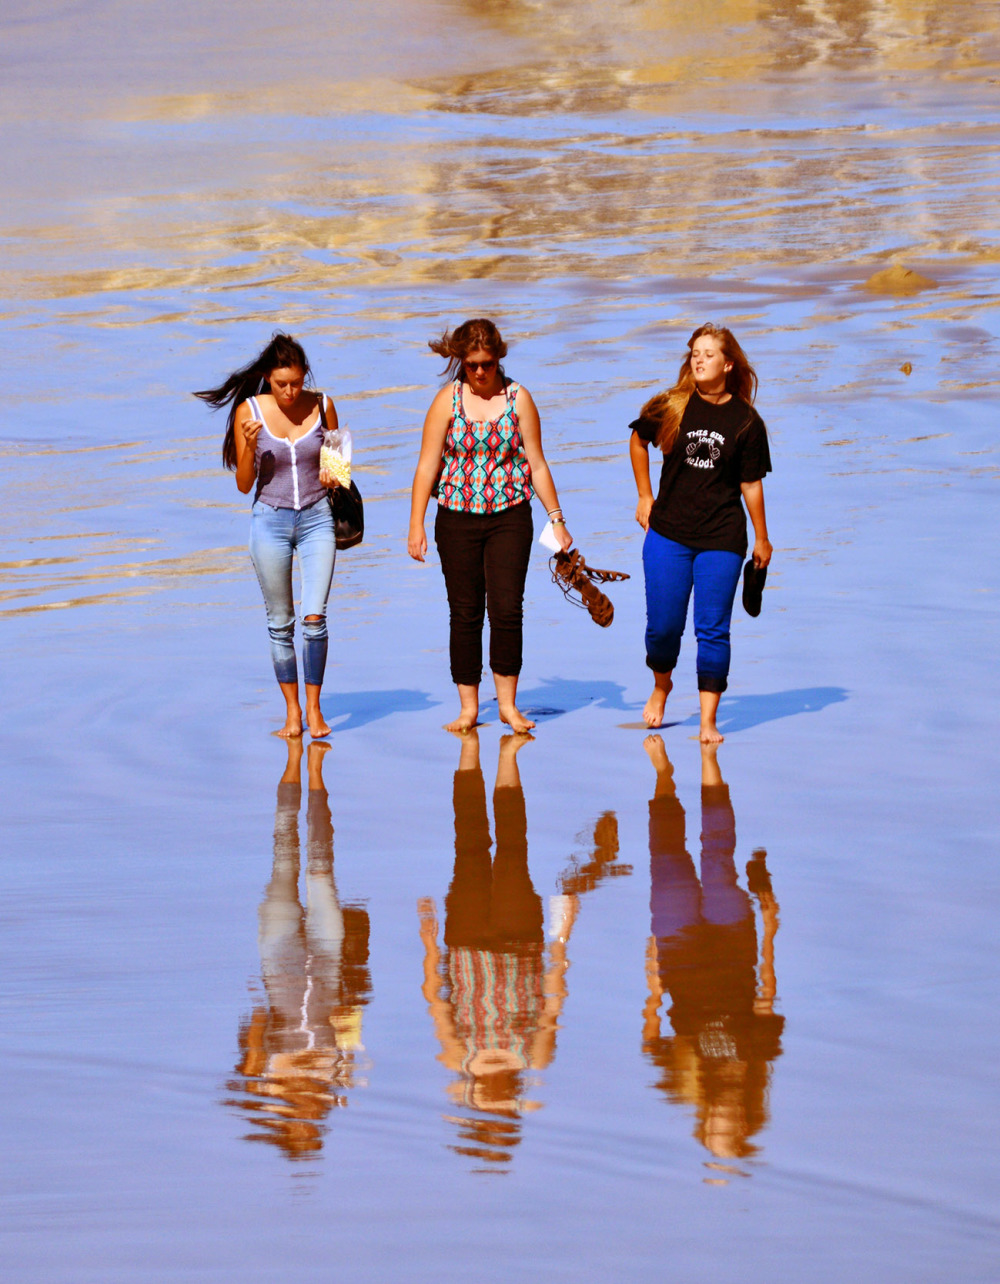 Girls reflection on water, Kings Beach